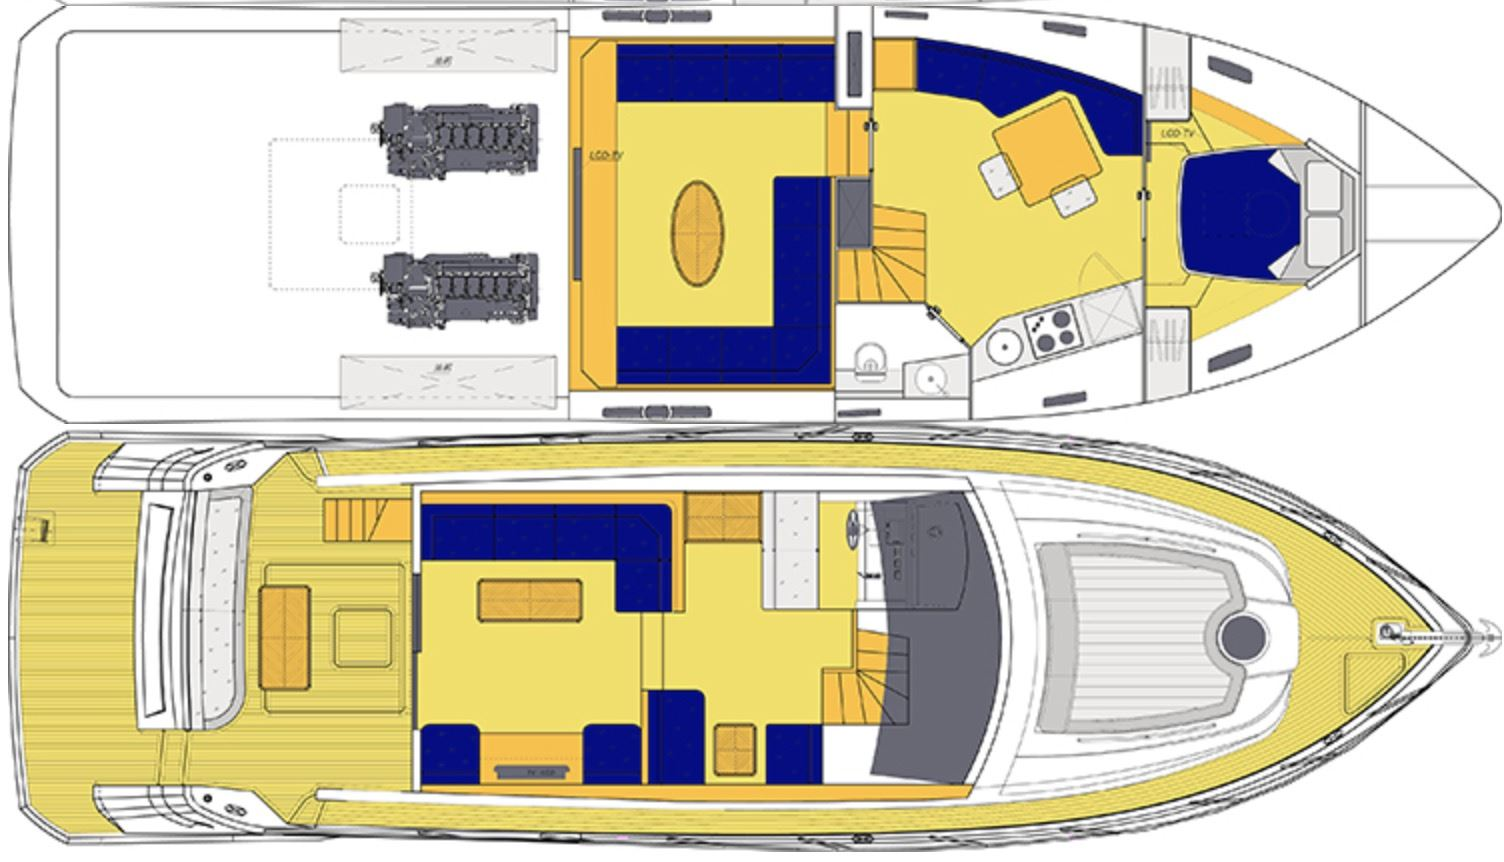 4170: NEW BUILD - Kingbay 550 - 17m Motoryacht - 096.jpg